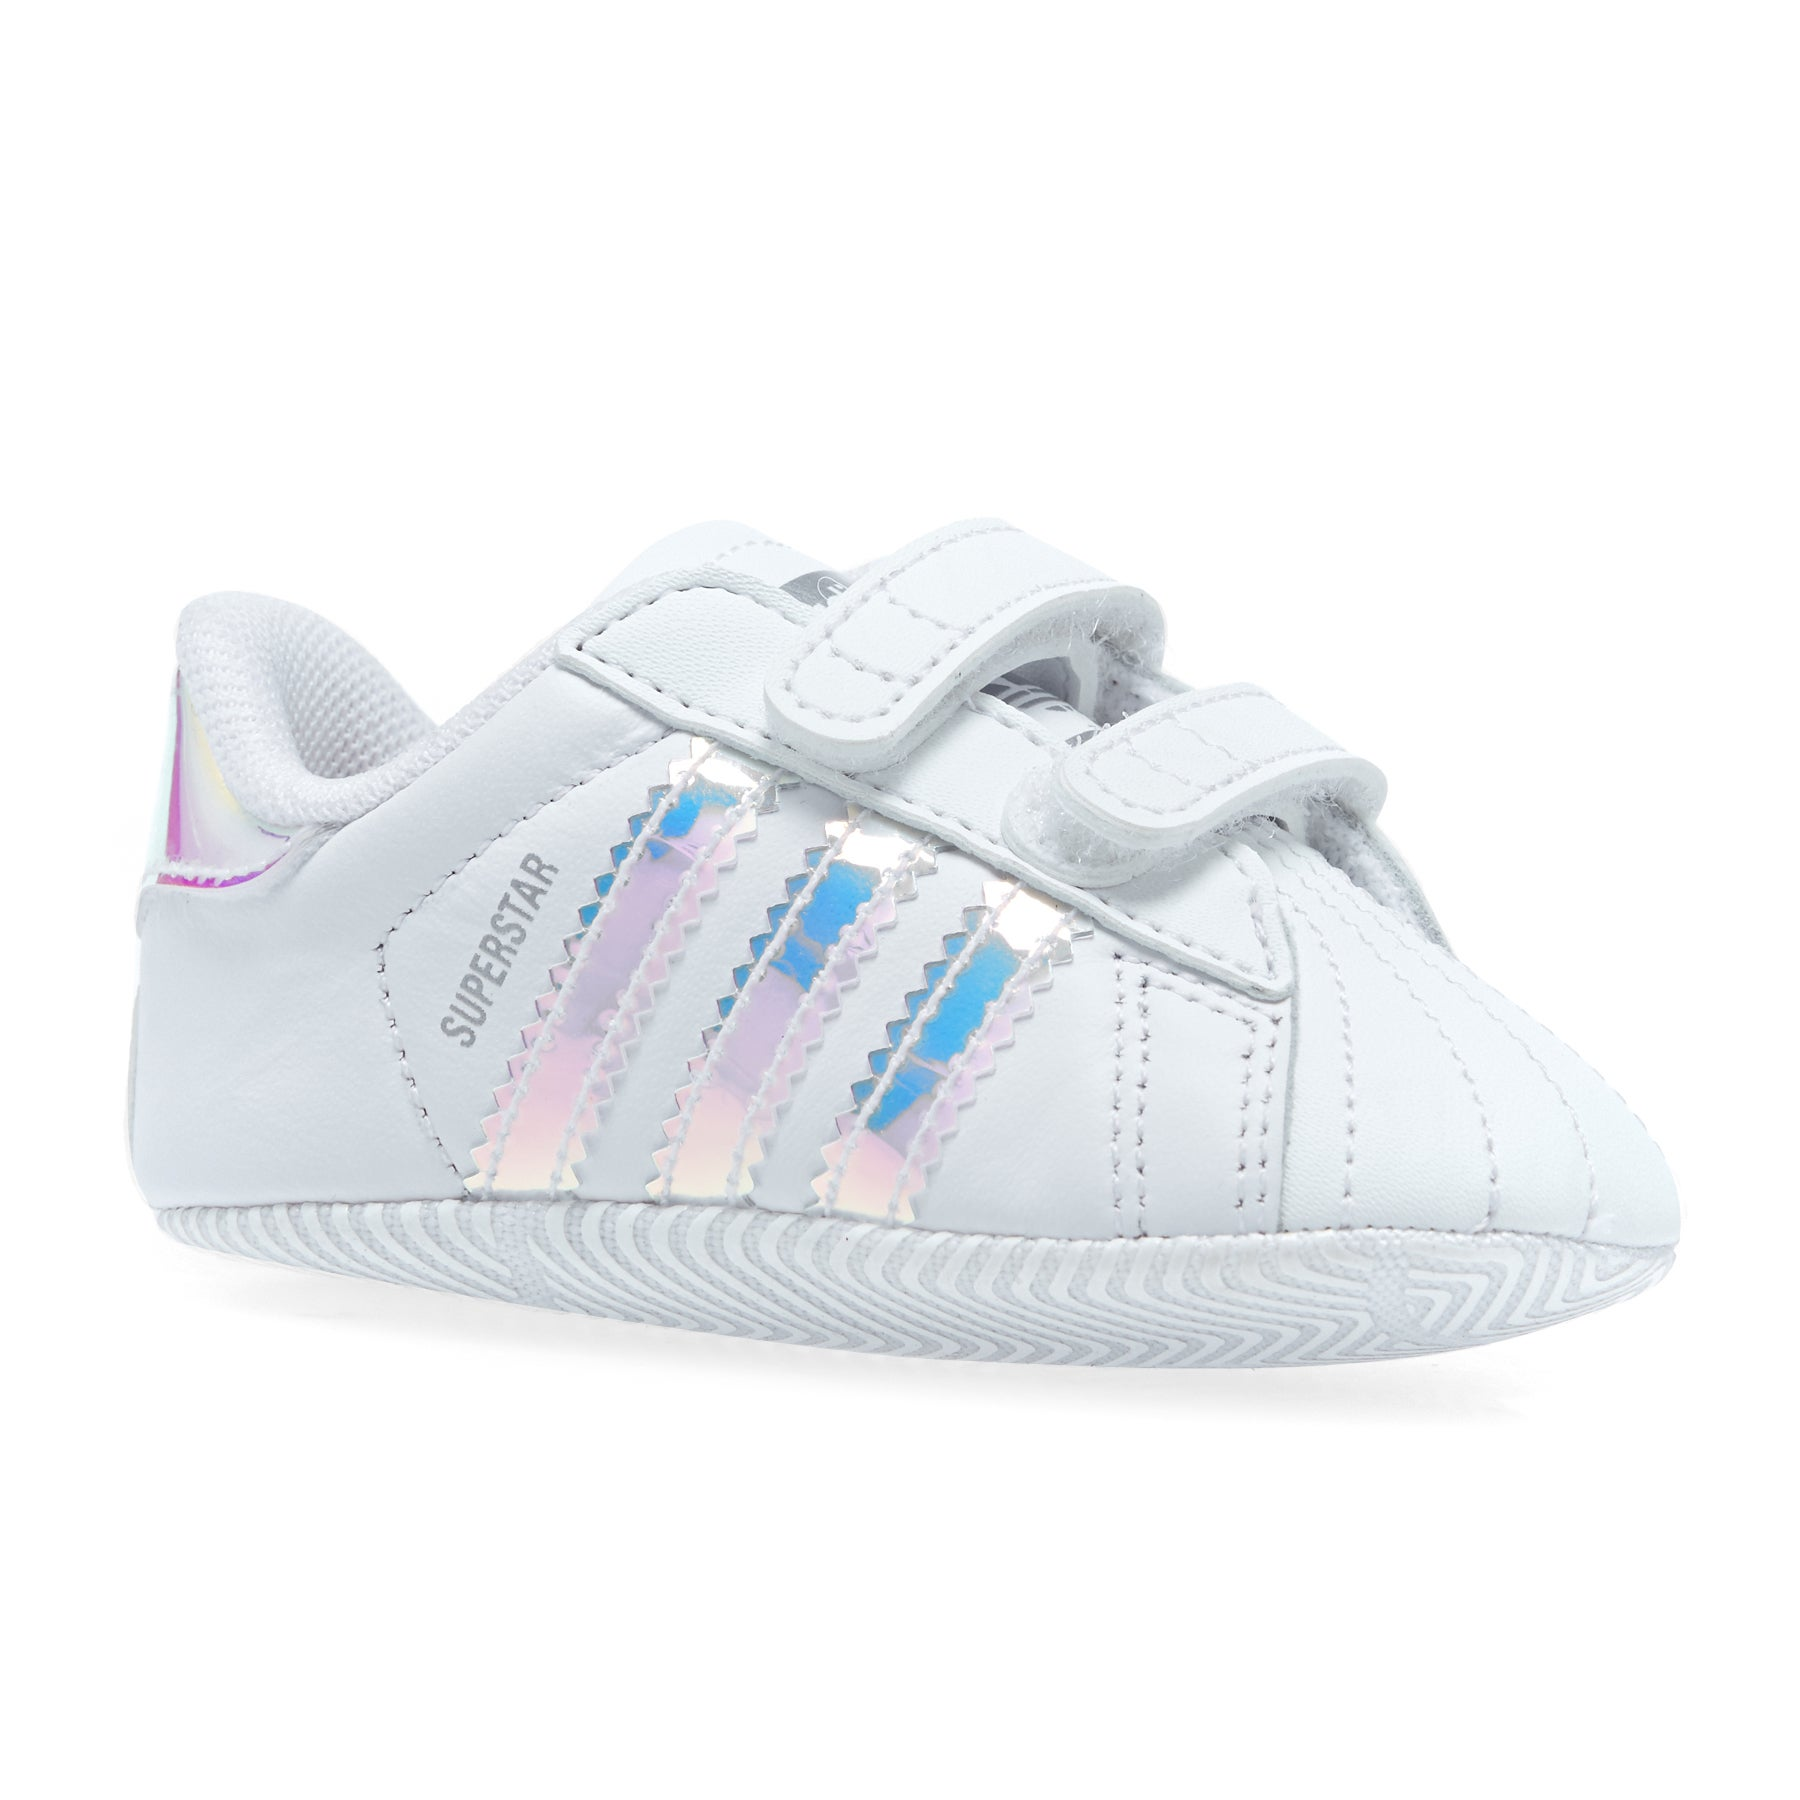 newest 73304 67786 Adidas Originals Superstar Crib Shoes | Free Delivery Options